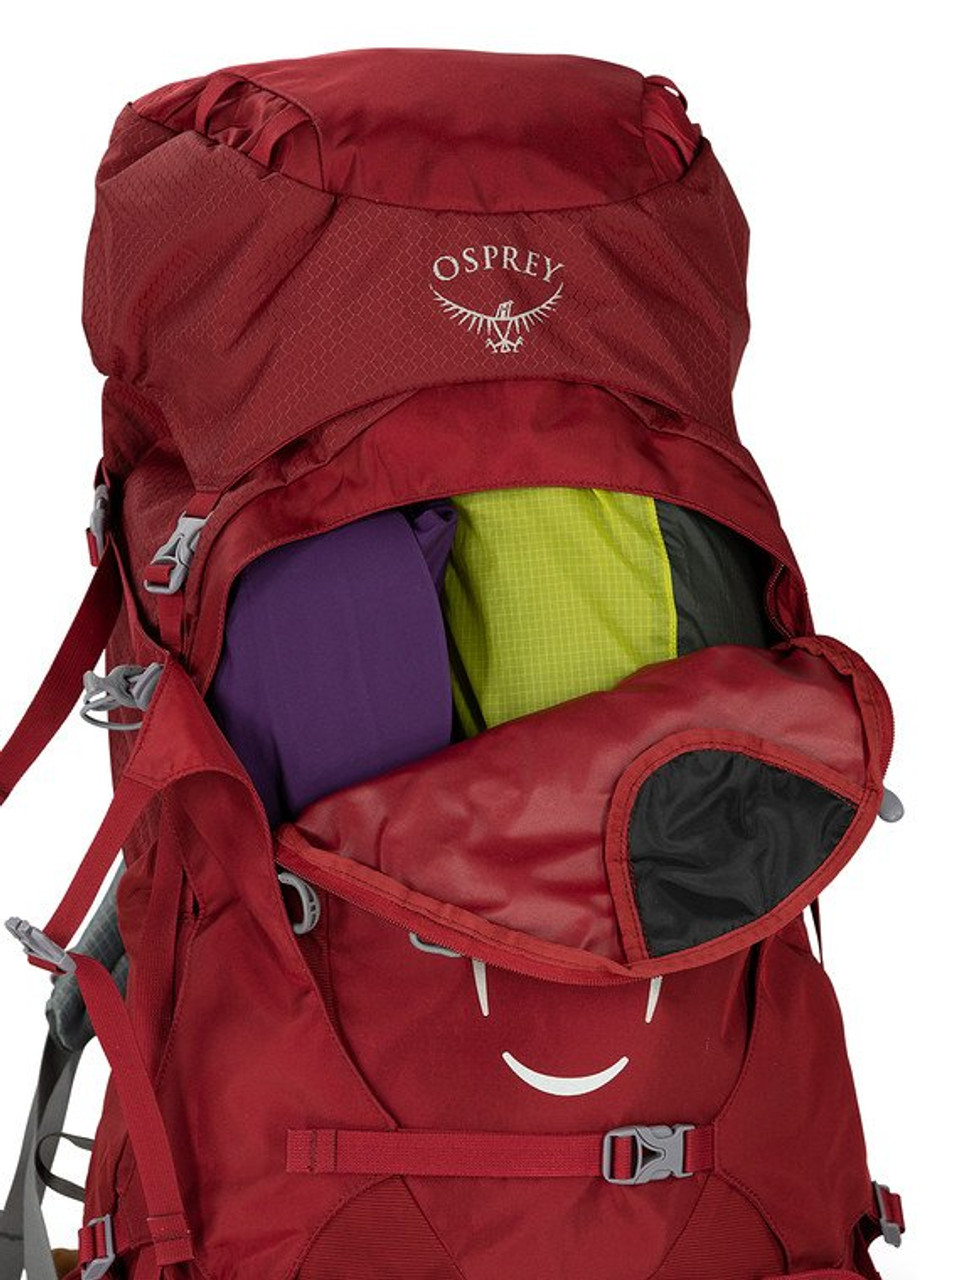 Osprey Ariel - 65L - Open - Online at Mountain Mail Order South Africa